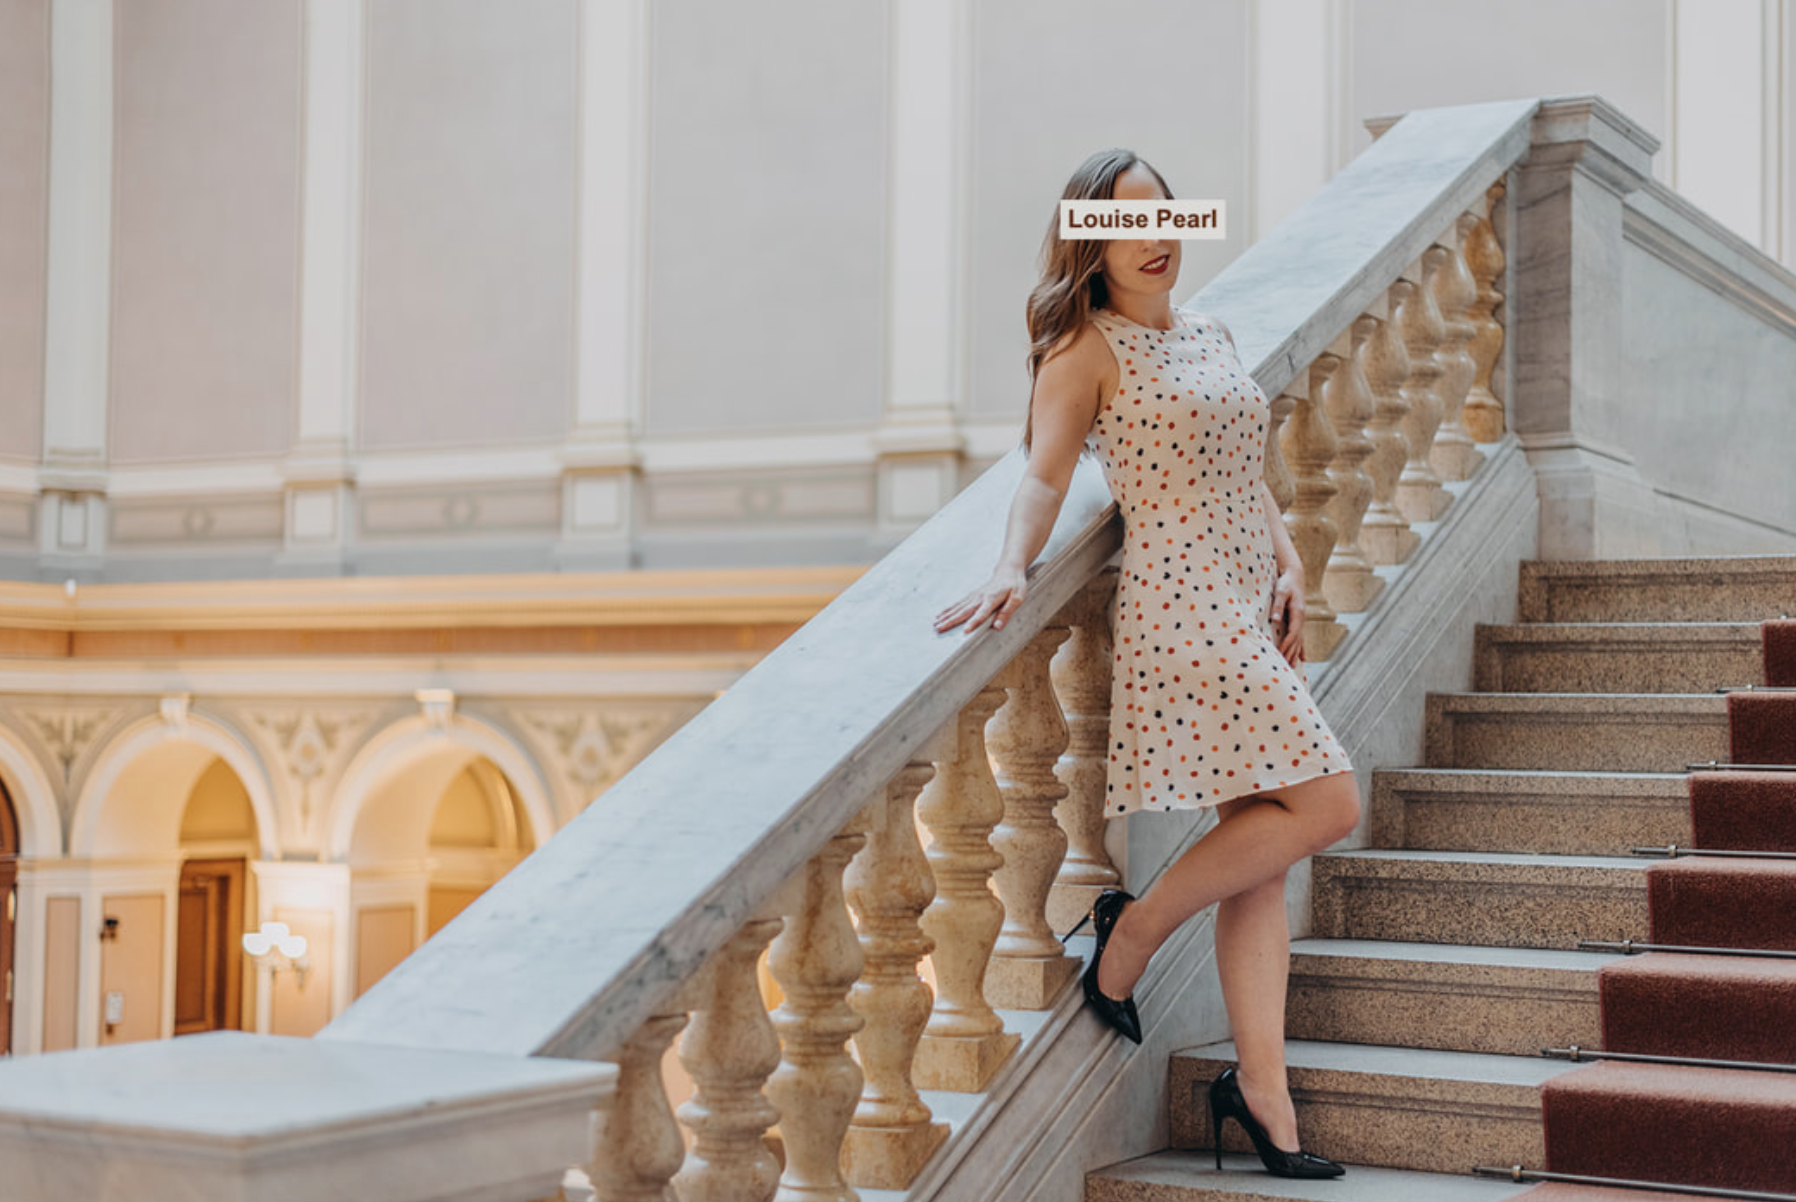 Louise Pearl - Your Girl Next Door, petite yet curvy natural companion offering a discreet girlfriend experience with empathy and an open mind.Based in Prague; available to travel internationally upon invitation.